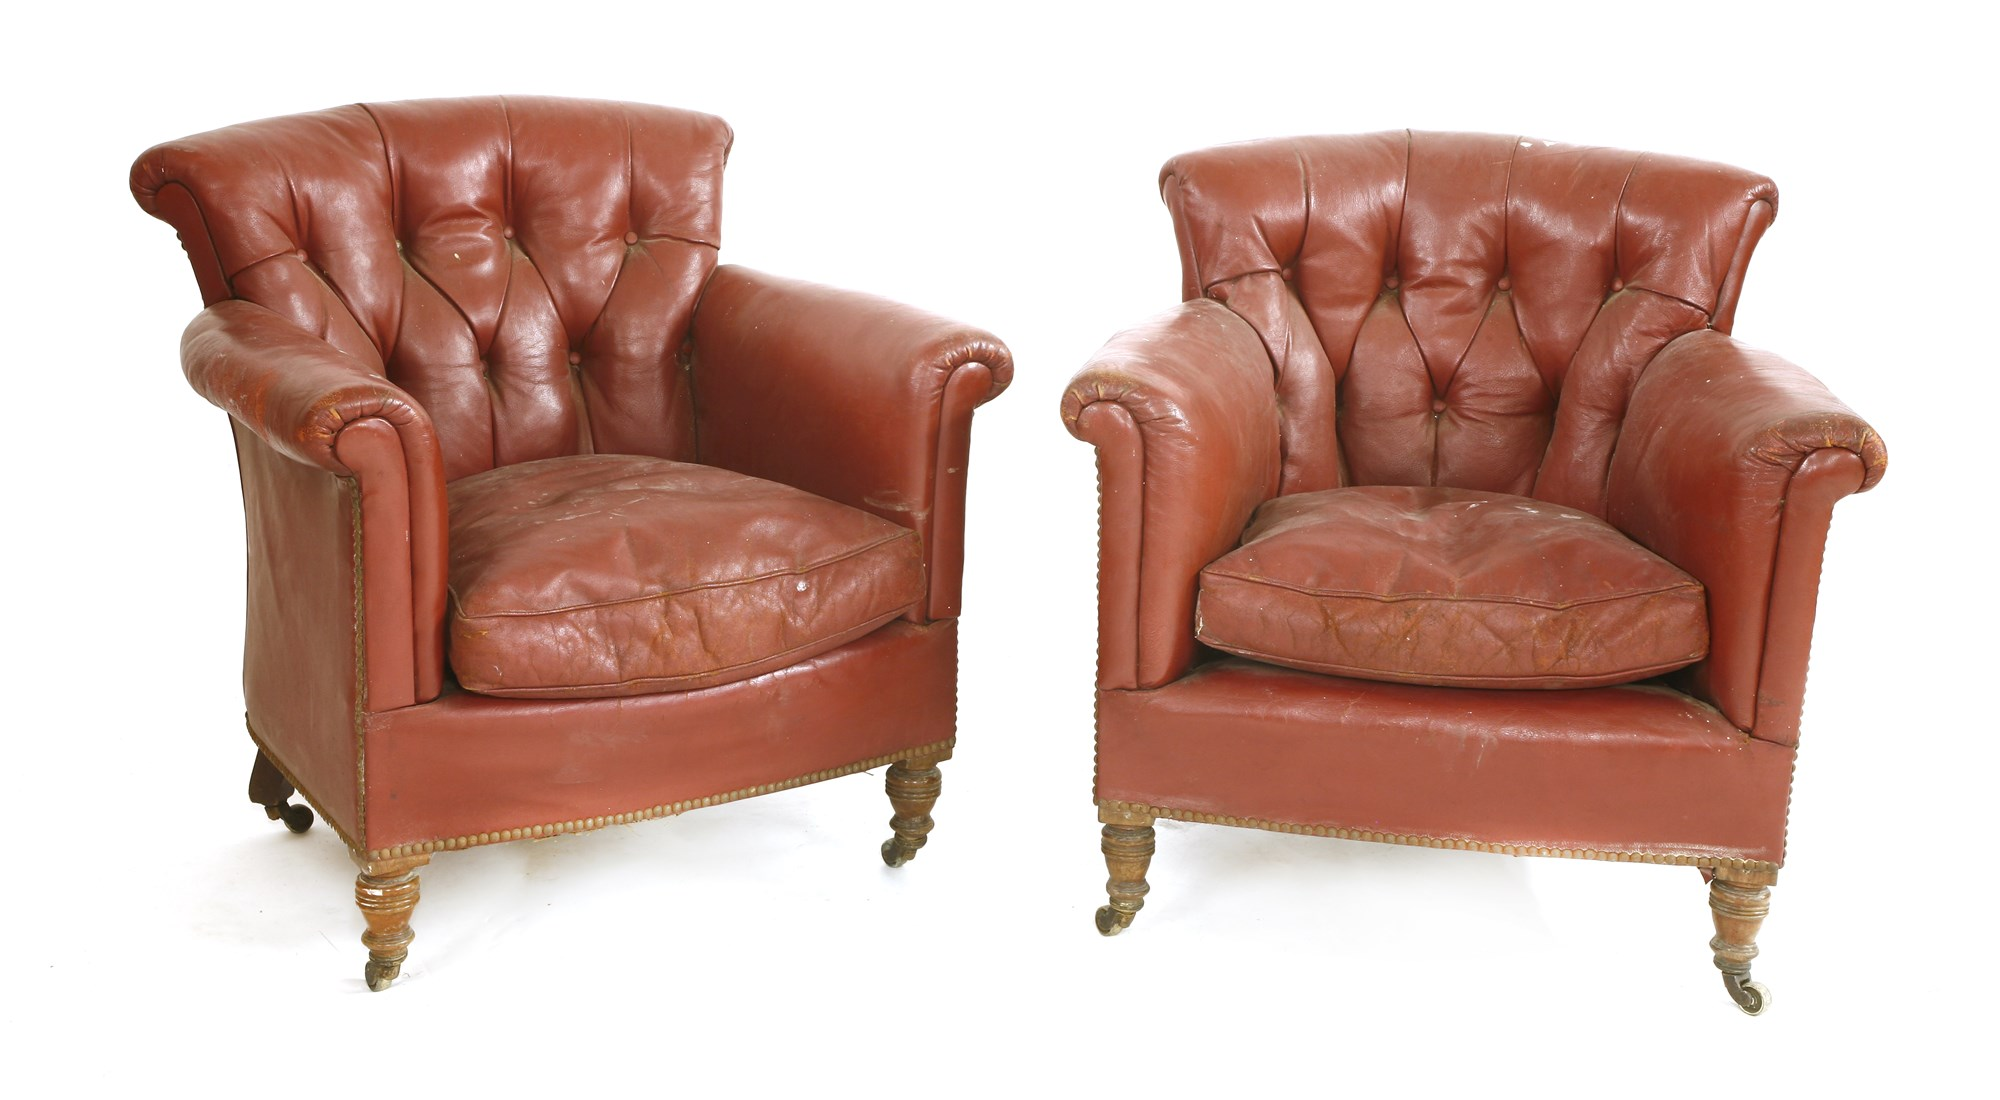 Sir Rod Stewart's Red Leather Armchairs at Sworders Fine Art